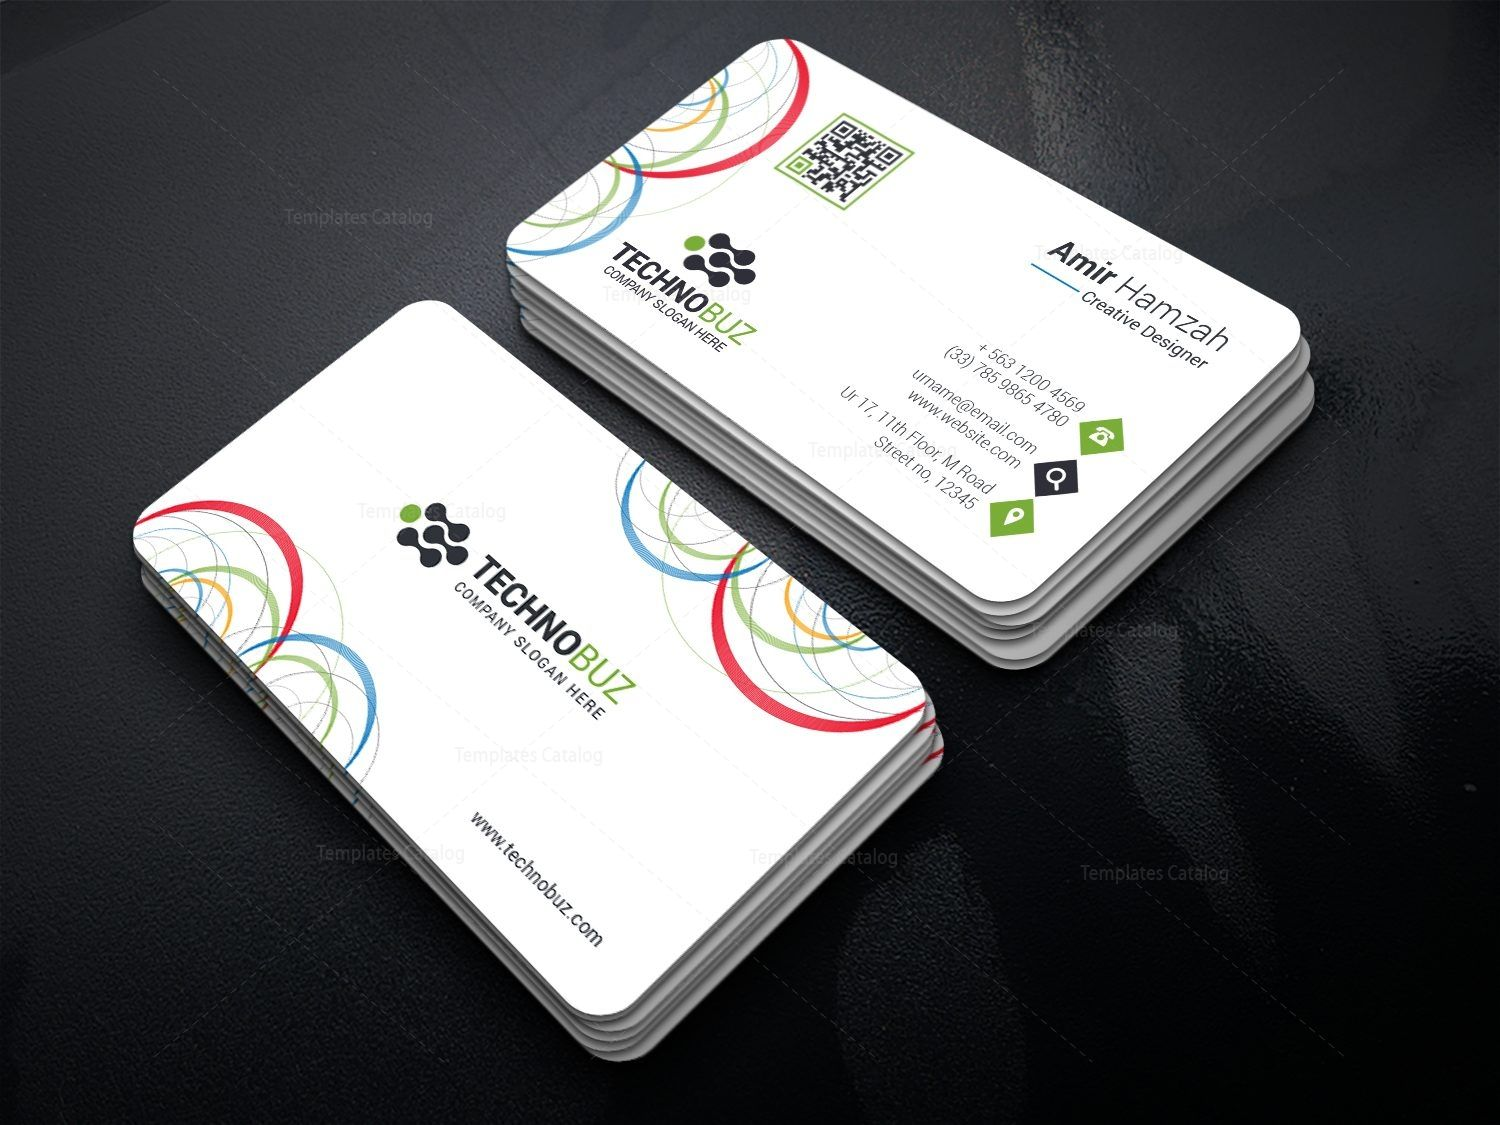 Circle premium business card template 000812 graphic template circle premium business card template 000812 cheaphphosting Choice Image